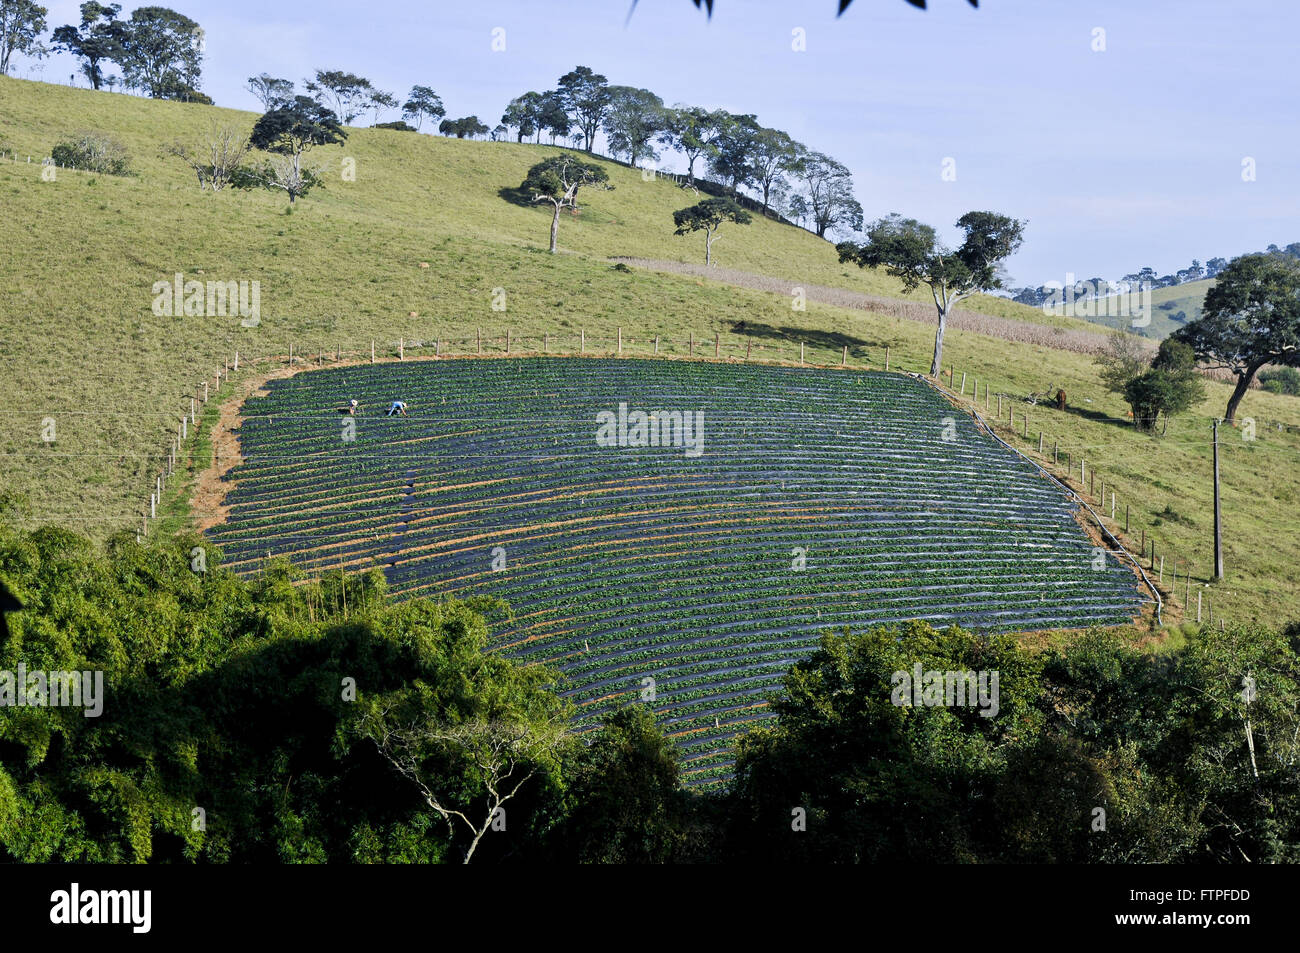 Plantation of strawberries in the rural town of stumps of Moji - southern region of Minas Gerais - Stock Image